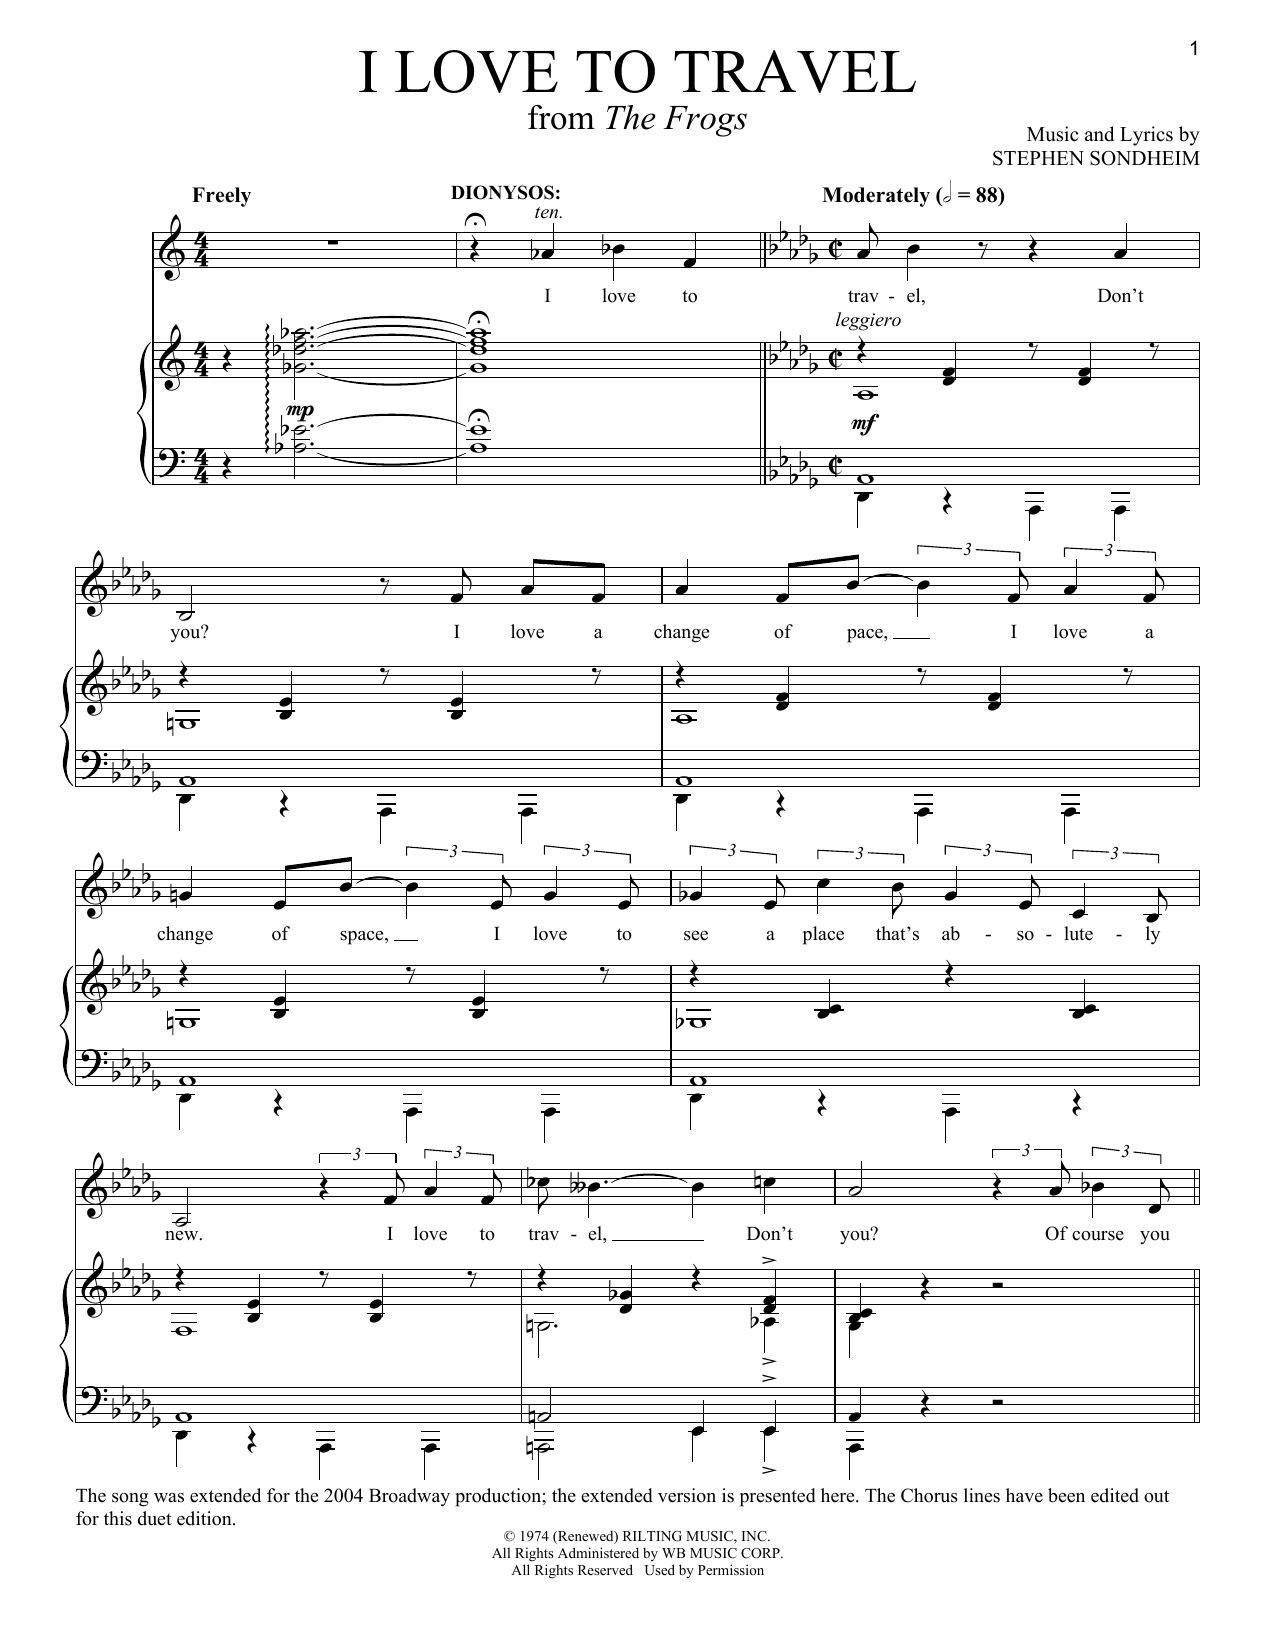 Stephen Sondheim I Love To Travel sheet music notes and chords. Download Printable PDF.